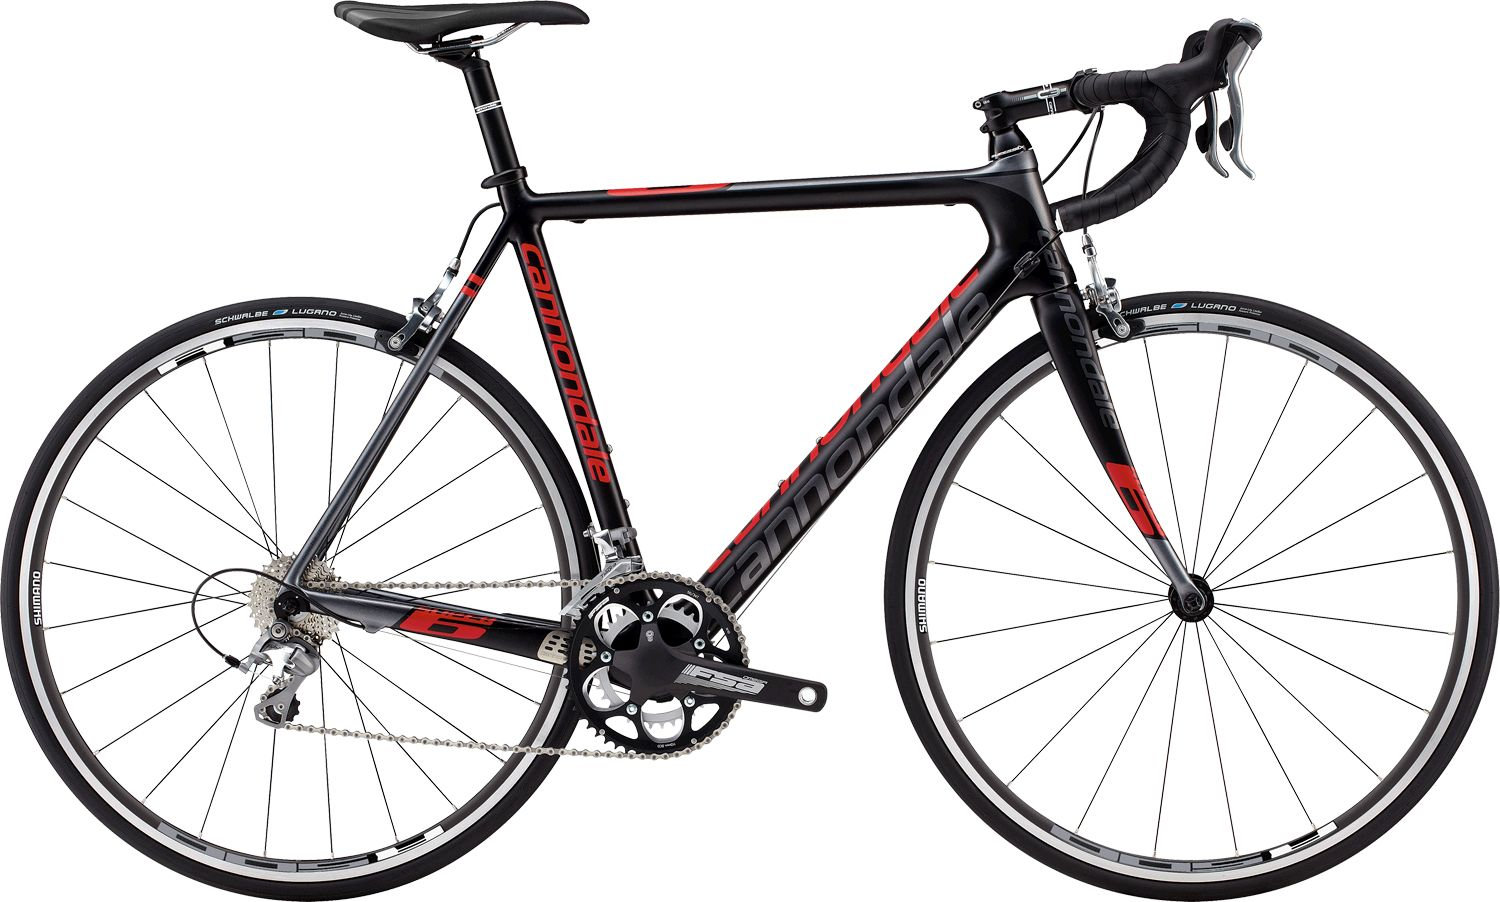 Cannondale Supersix 6 Tiagra 2013 Review The Bike List